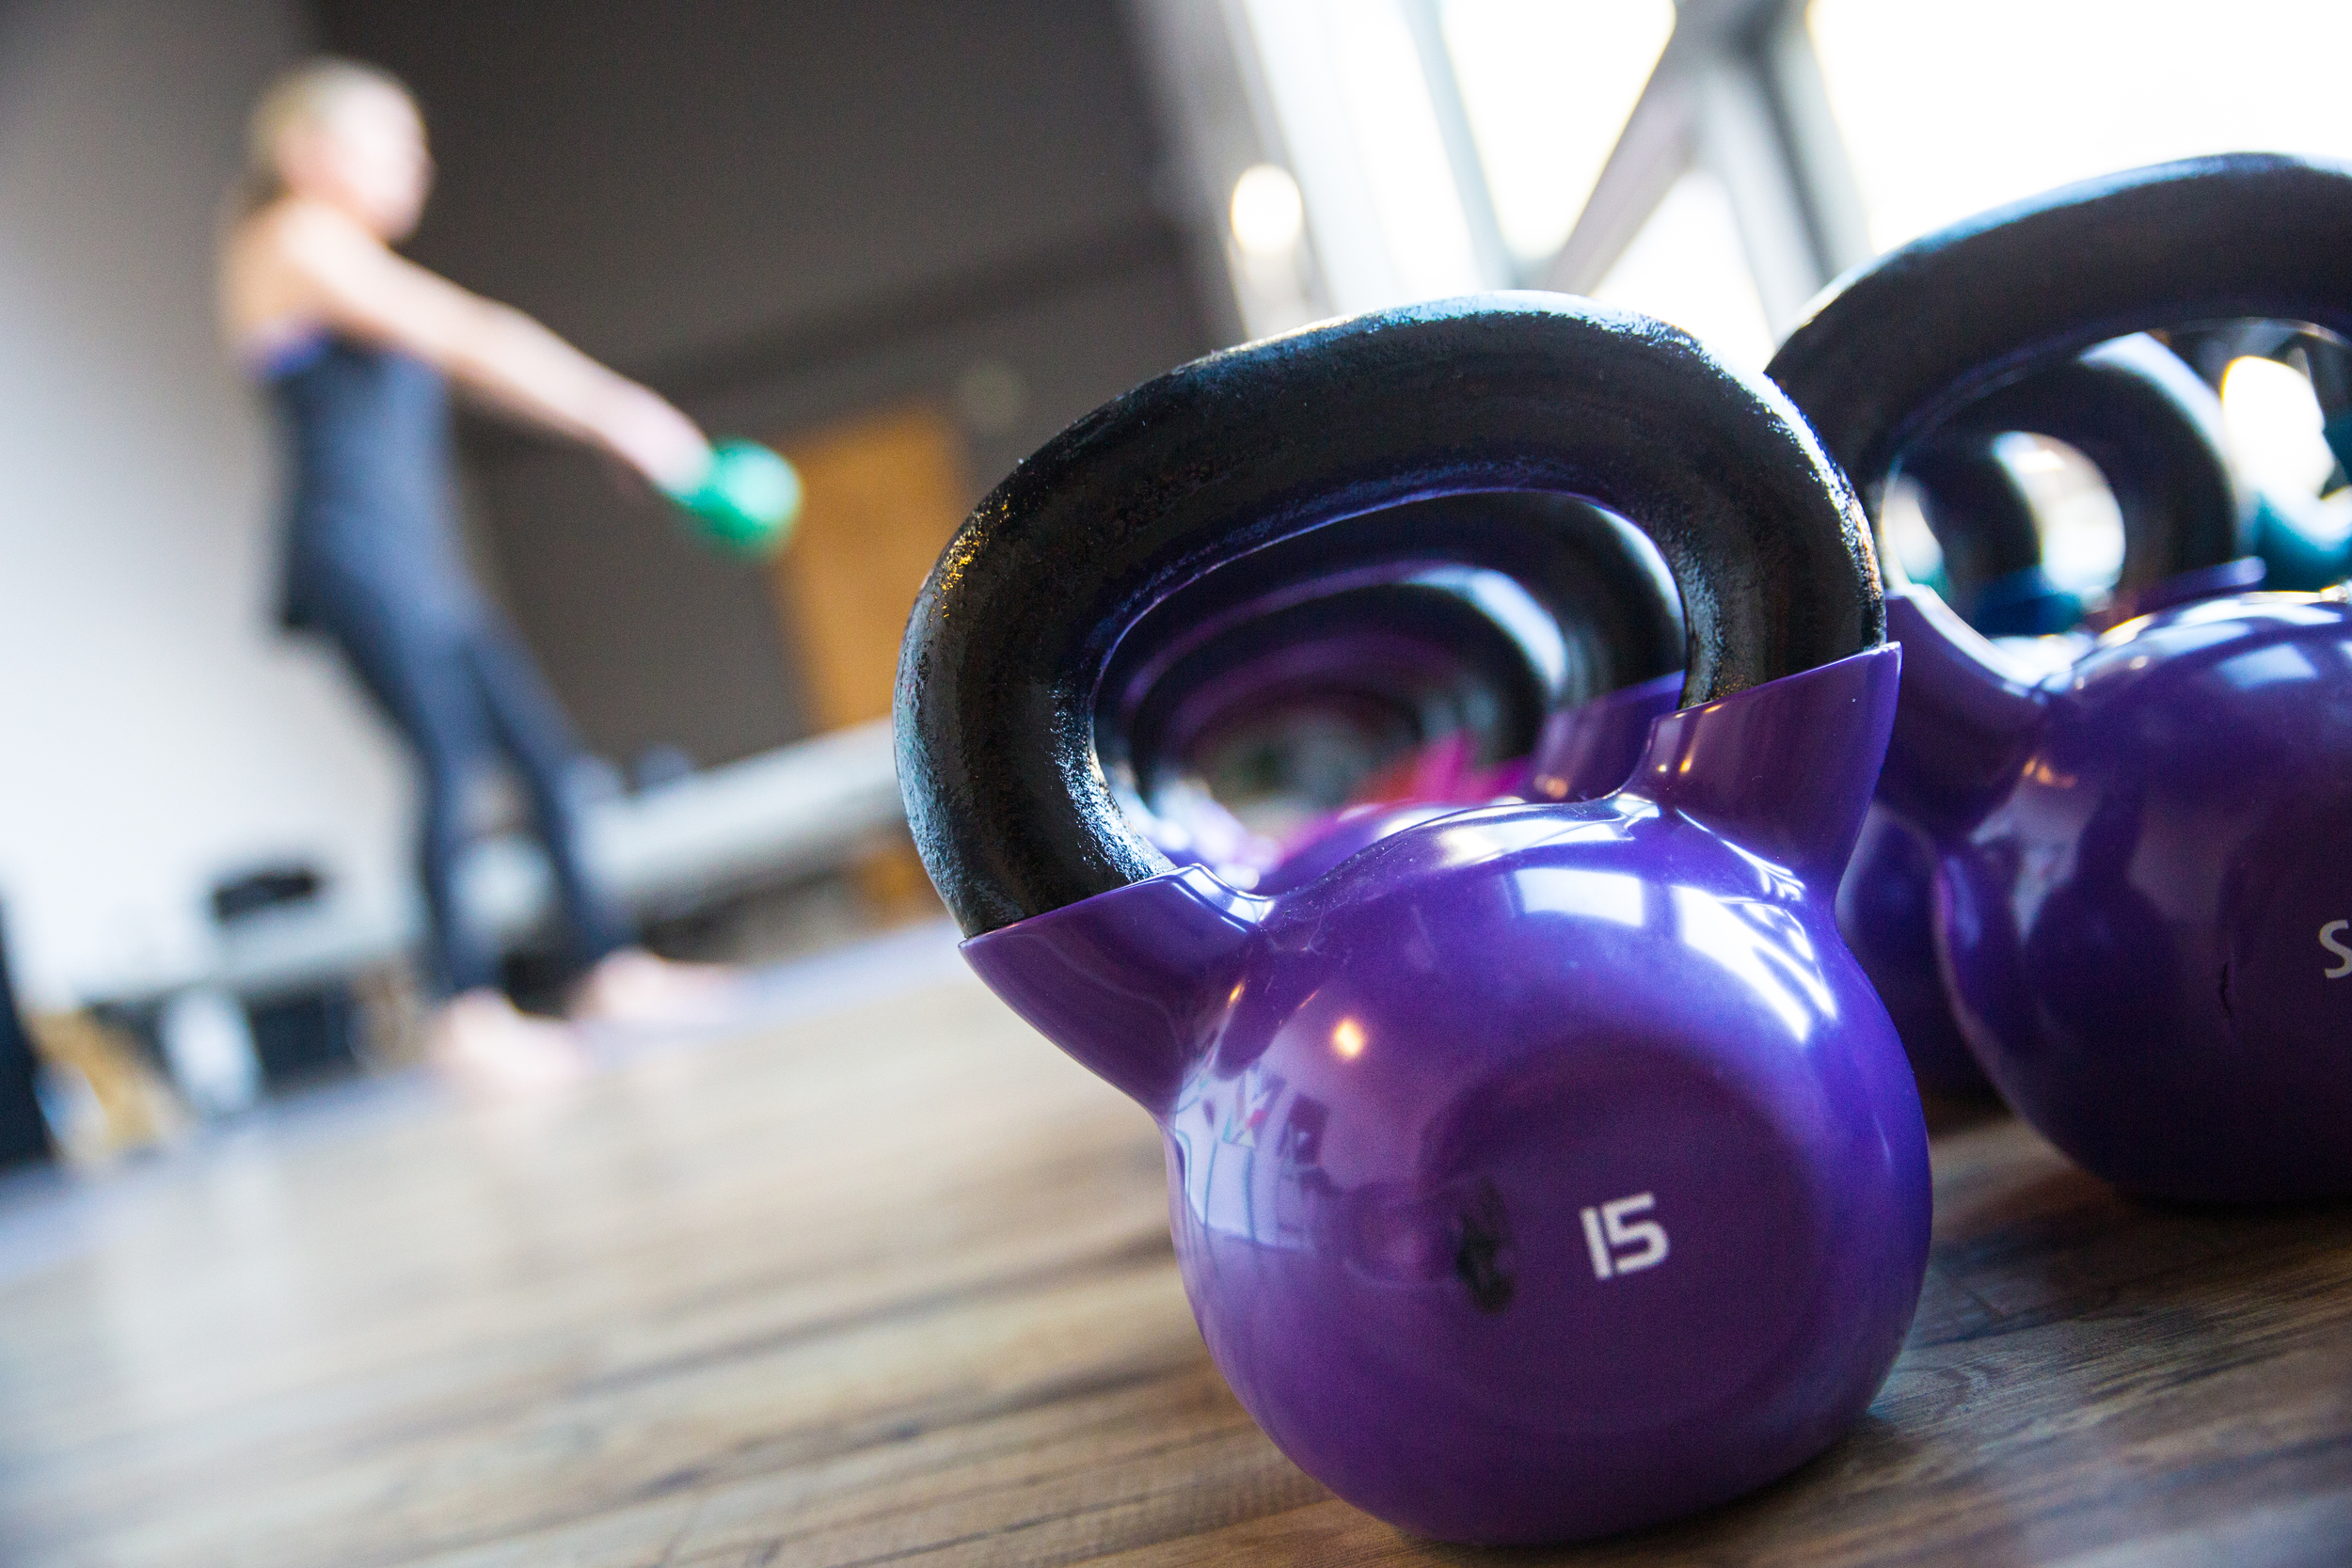 KETTLEBELL CLASS    PREPARE YOURSELF TO BE CHALLENGED AND GET SWEATY IN THIS 30 MINUTE CLASS. DON'T LET THE KETTLEBELLS INTIMIDATE YOU, WE HAVE A WIDE RANGE OF WEIGHTS FOR ALL LEVELS.